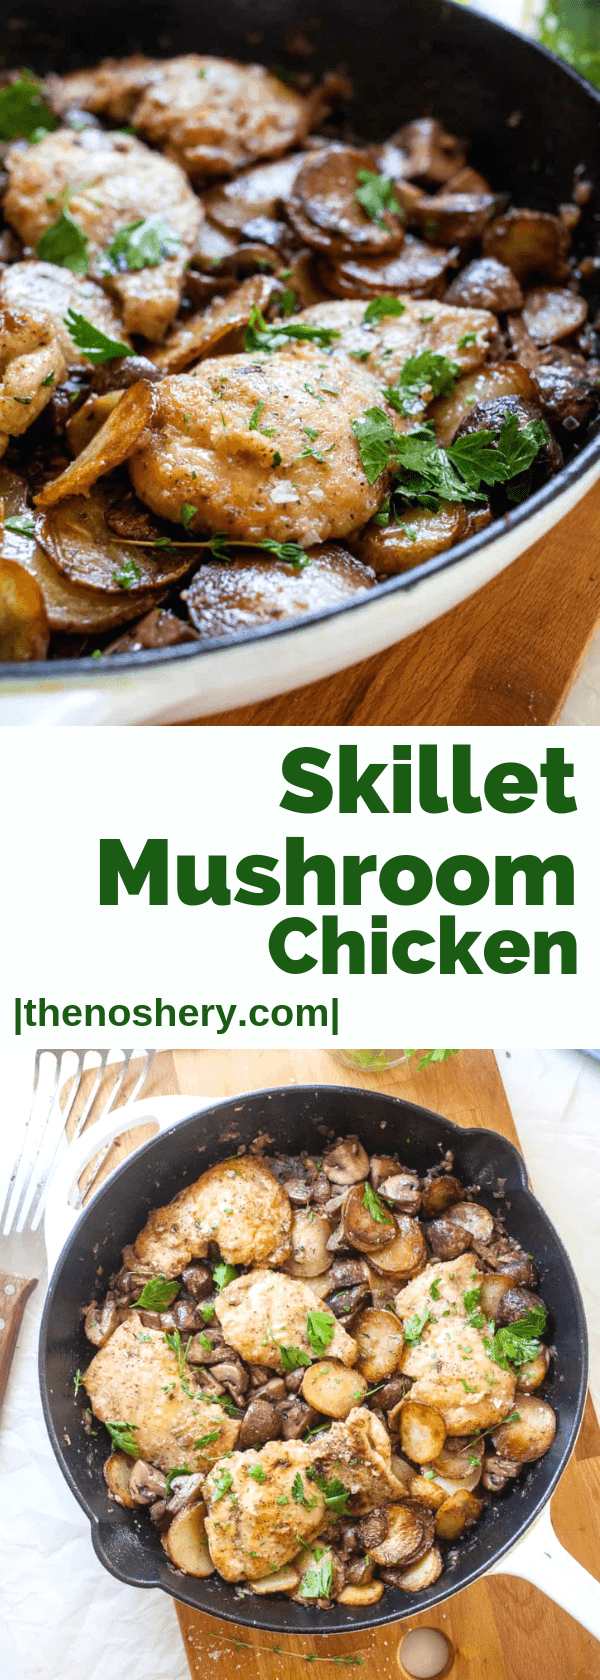 Skillet Mushroom Chicken | Mushroom chicken is a classic dish. But a one-skillet dish of chicken, mushrooms, and potatoes in a creamy wine sauce makes this a complete meal. | The Noshery